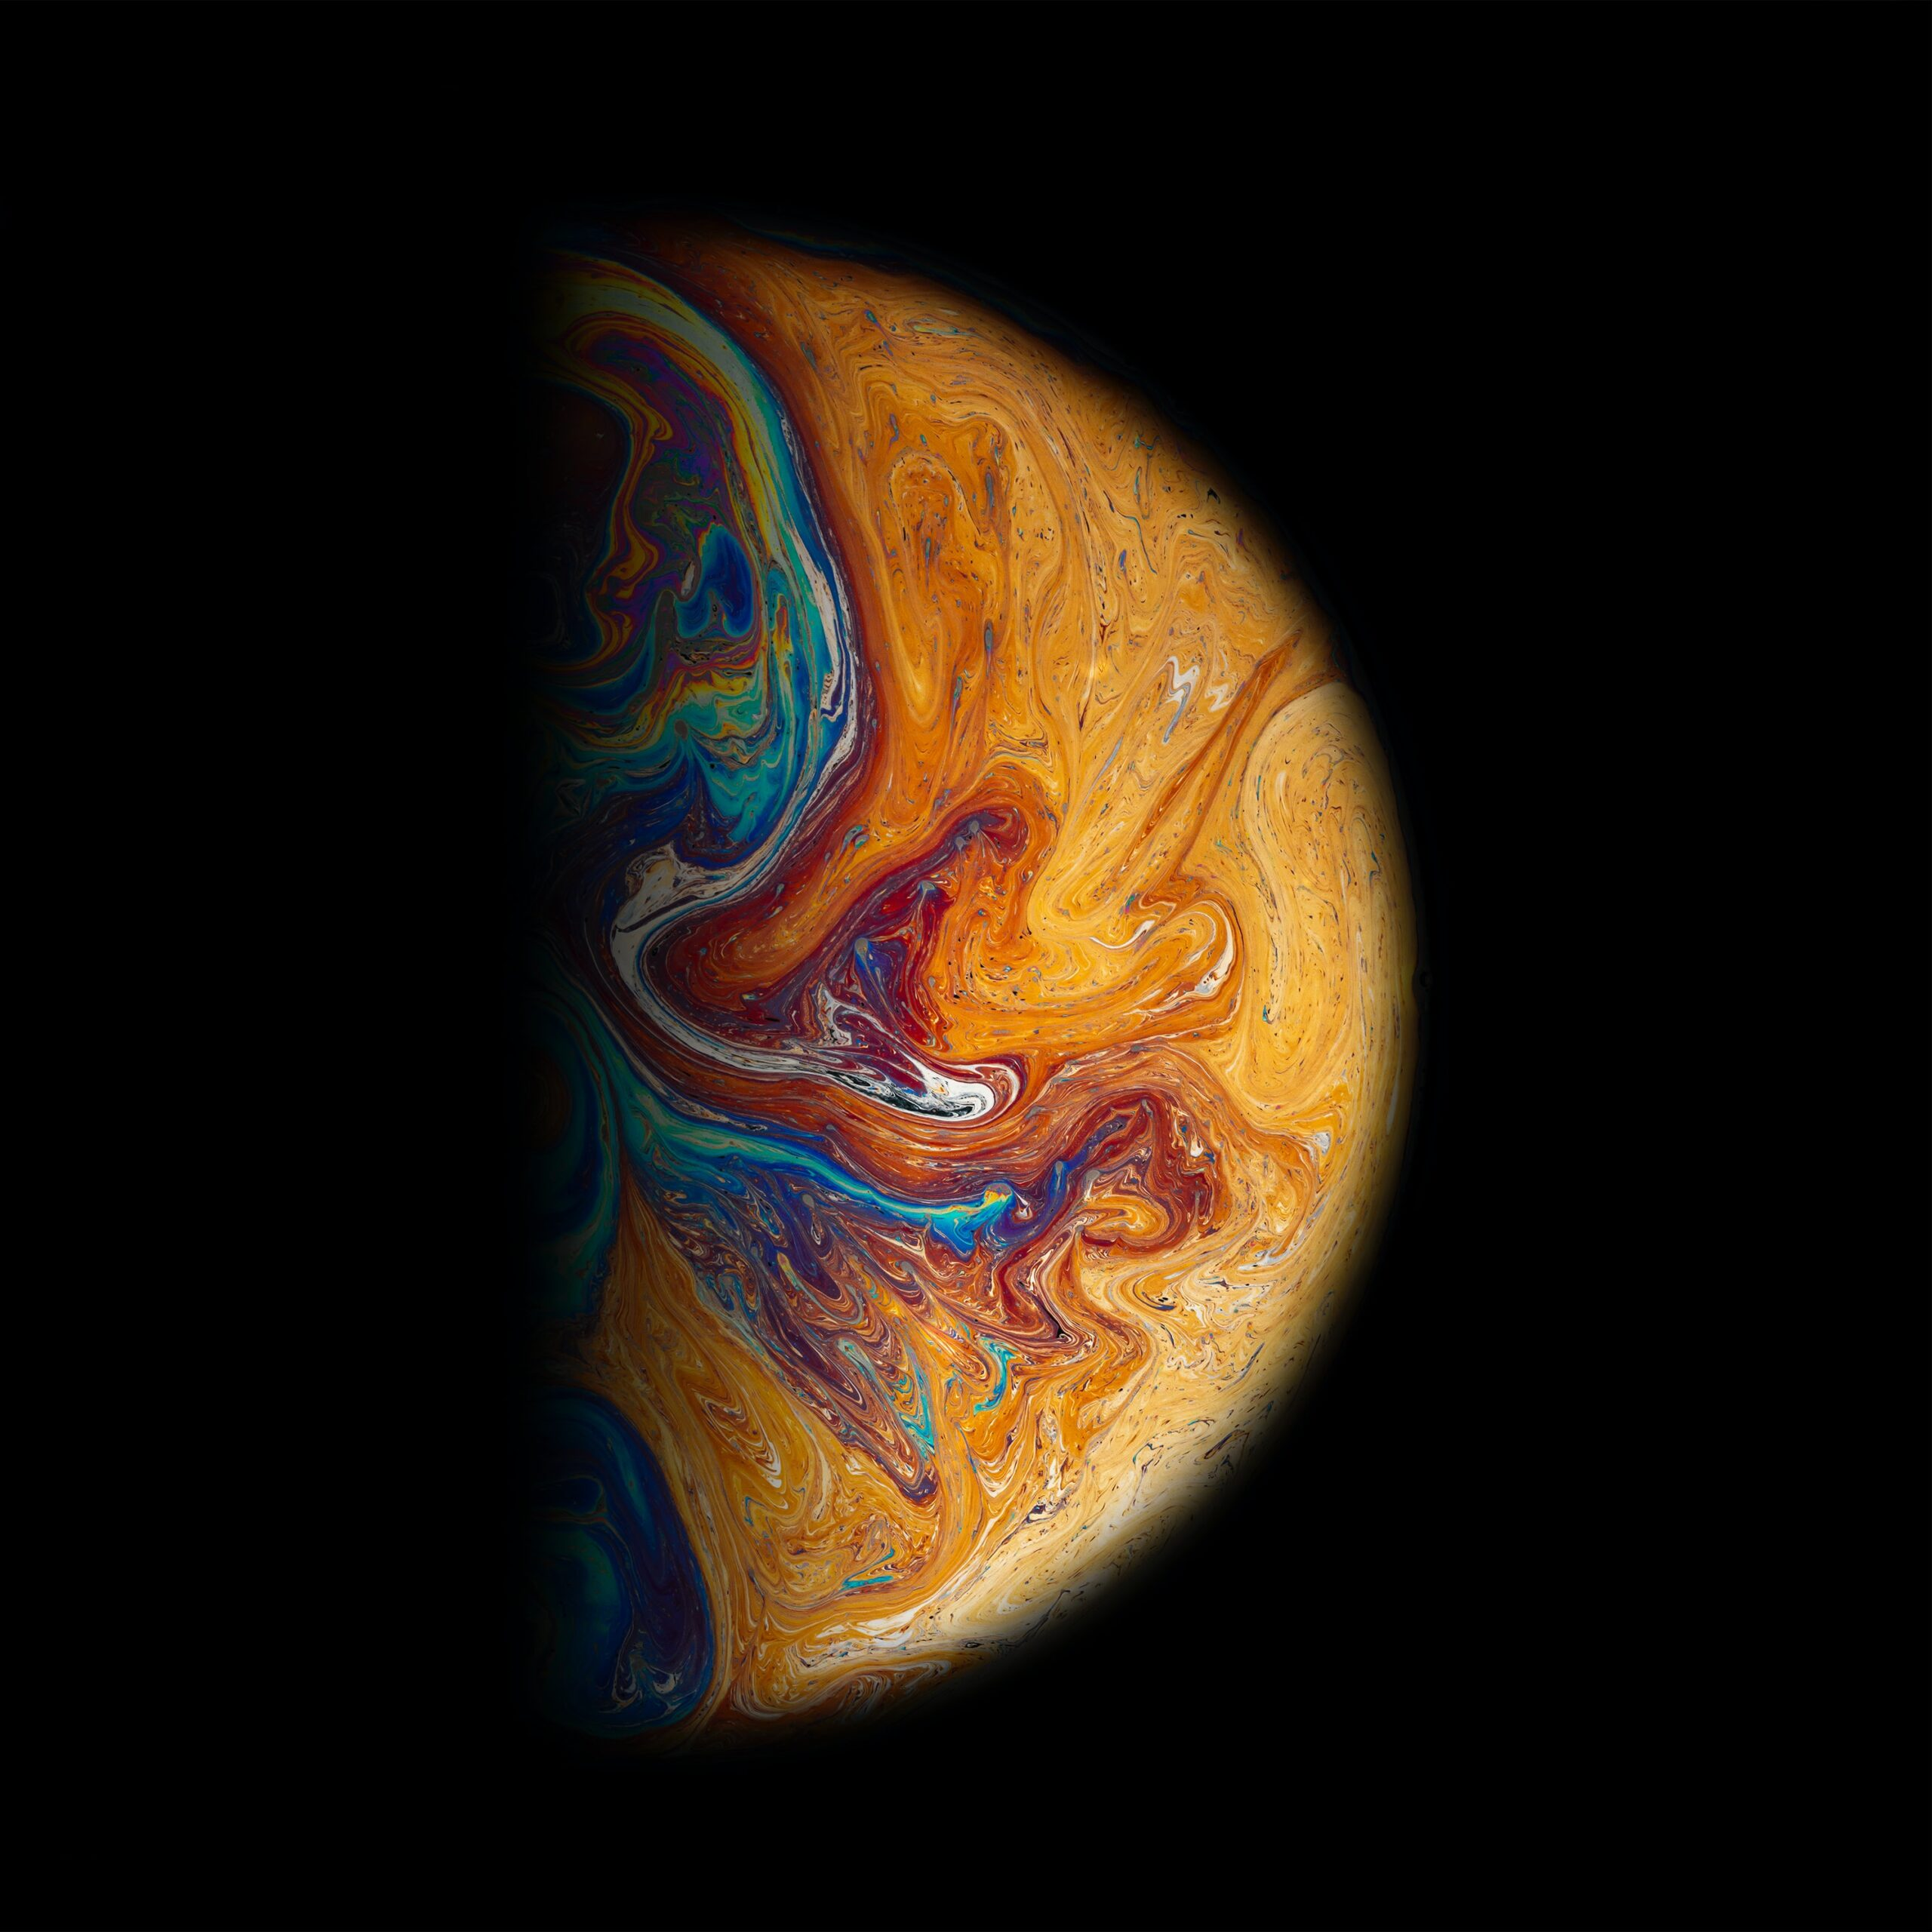 AI discovers metals turning into hydrogen on planets